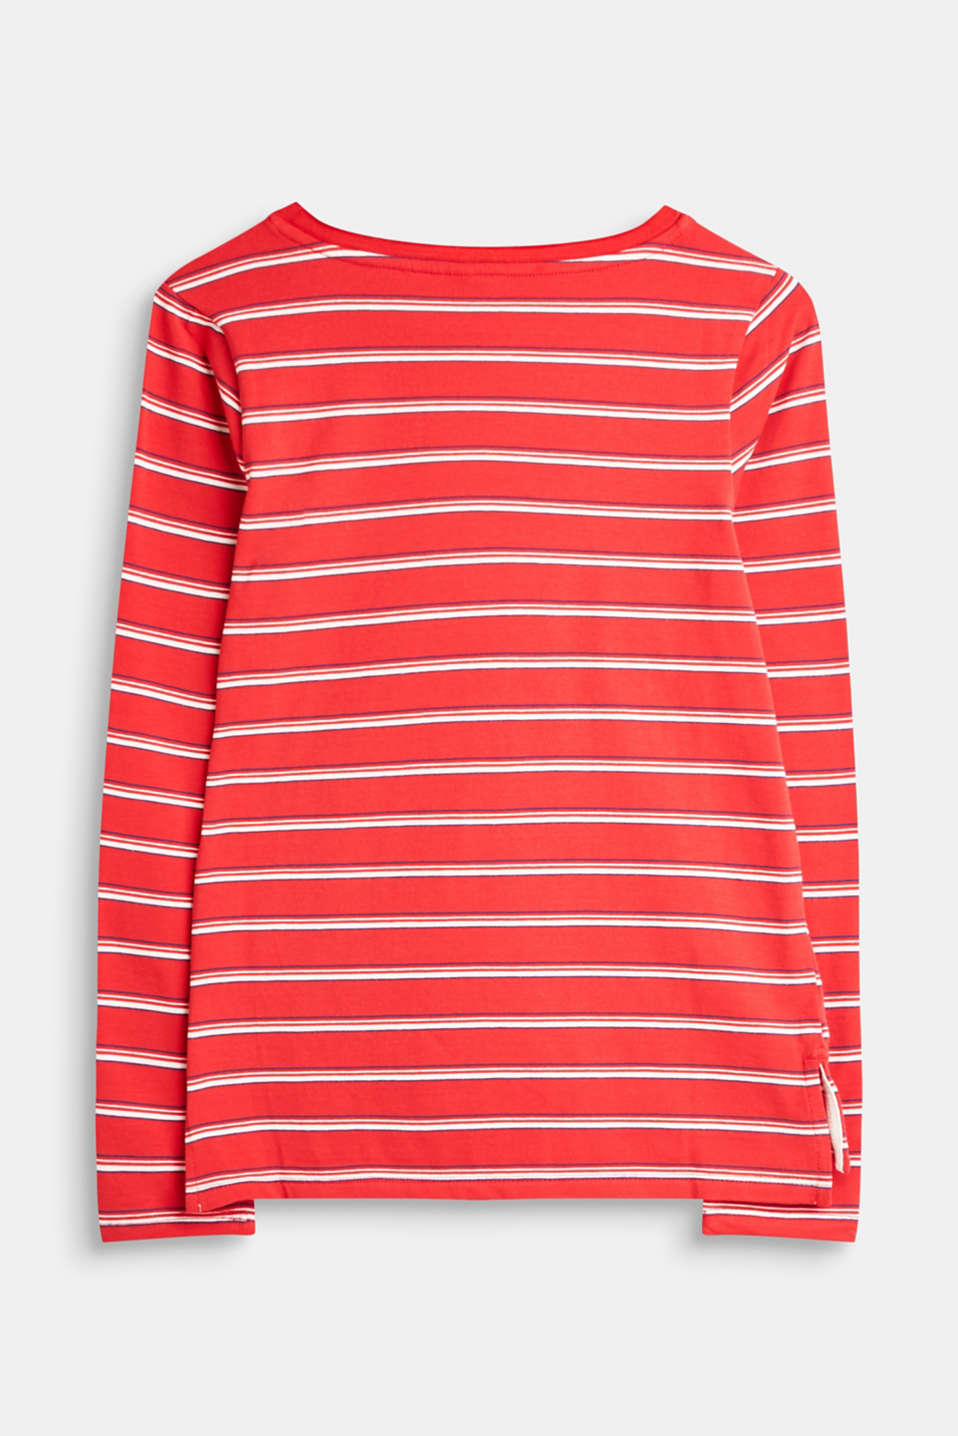 Striped long sleeve top made of stretch cotton